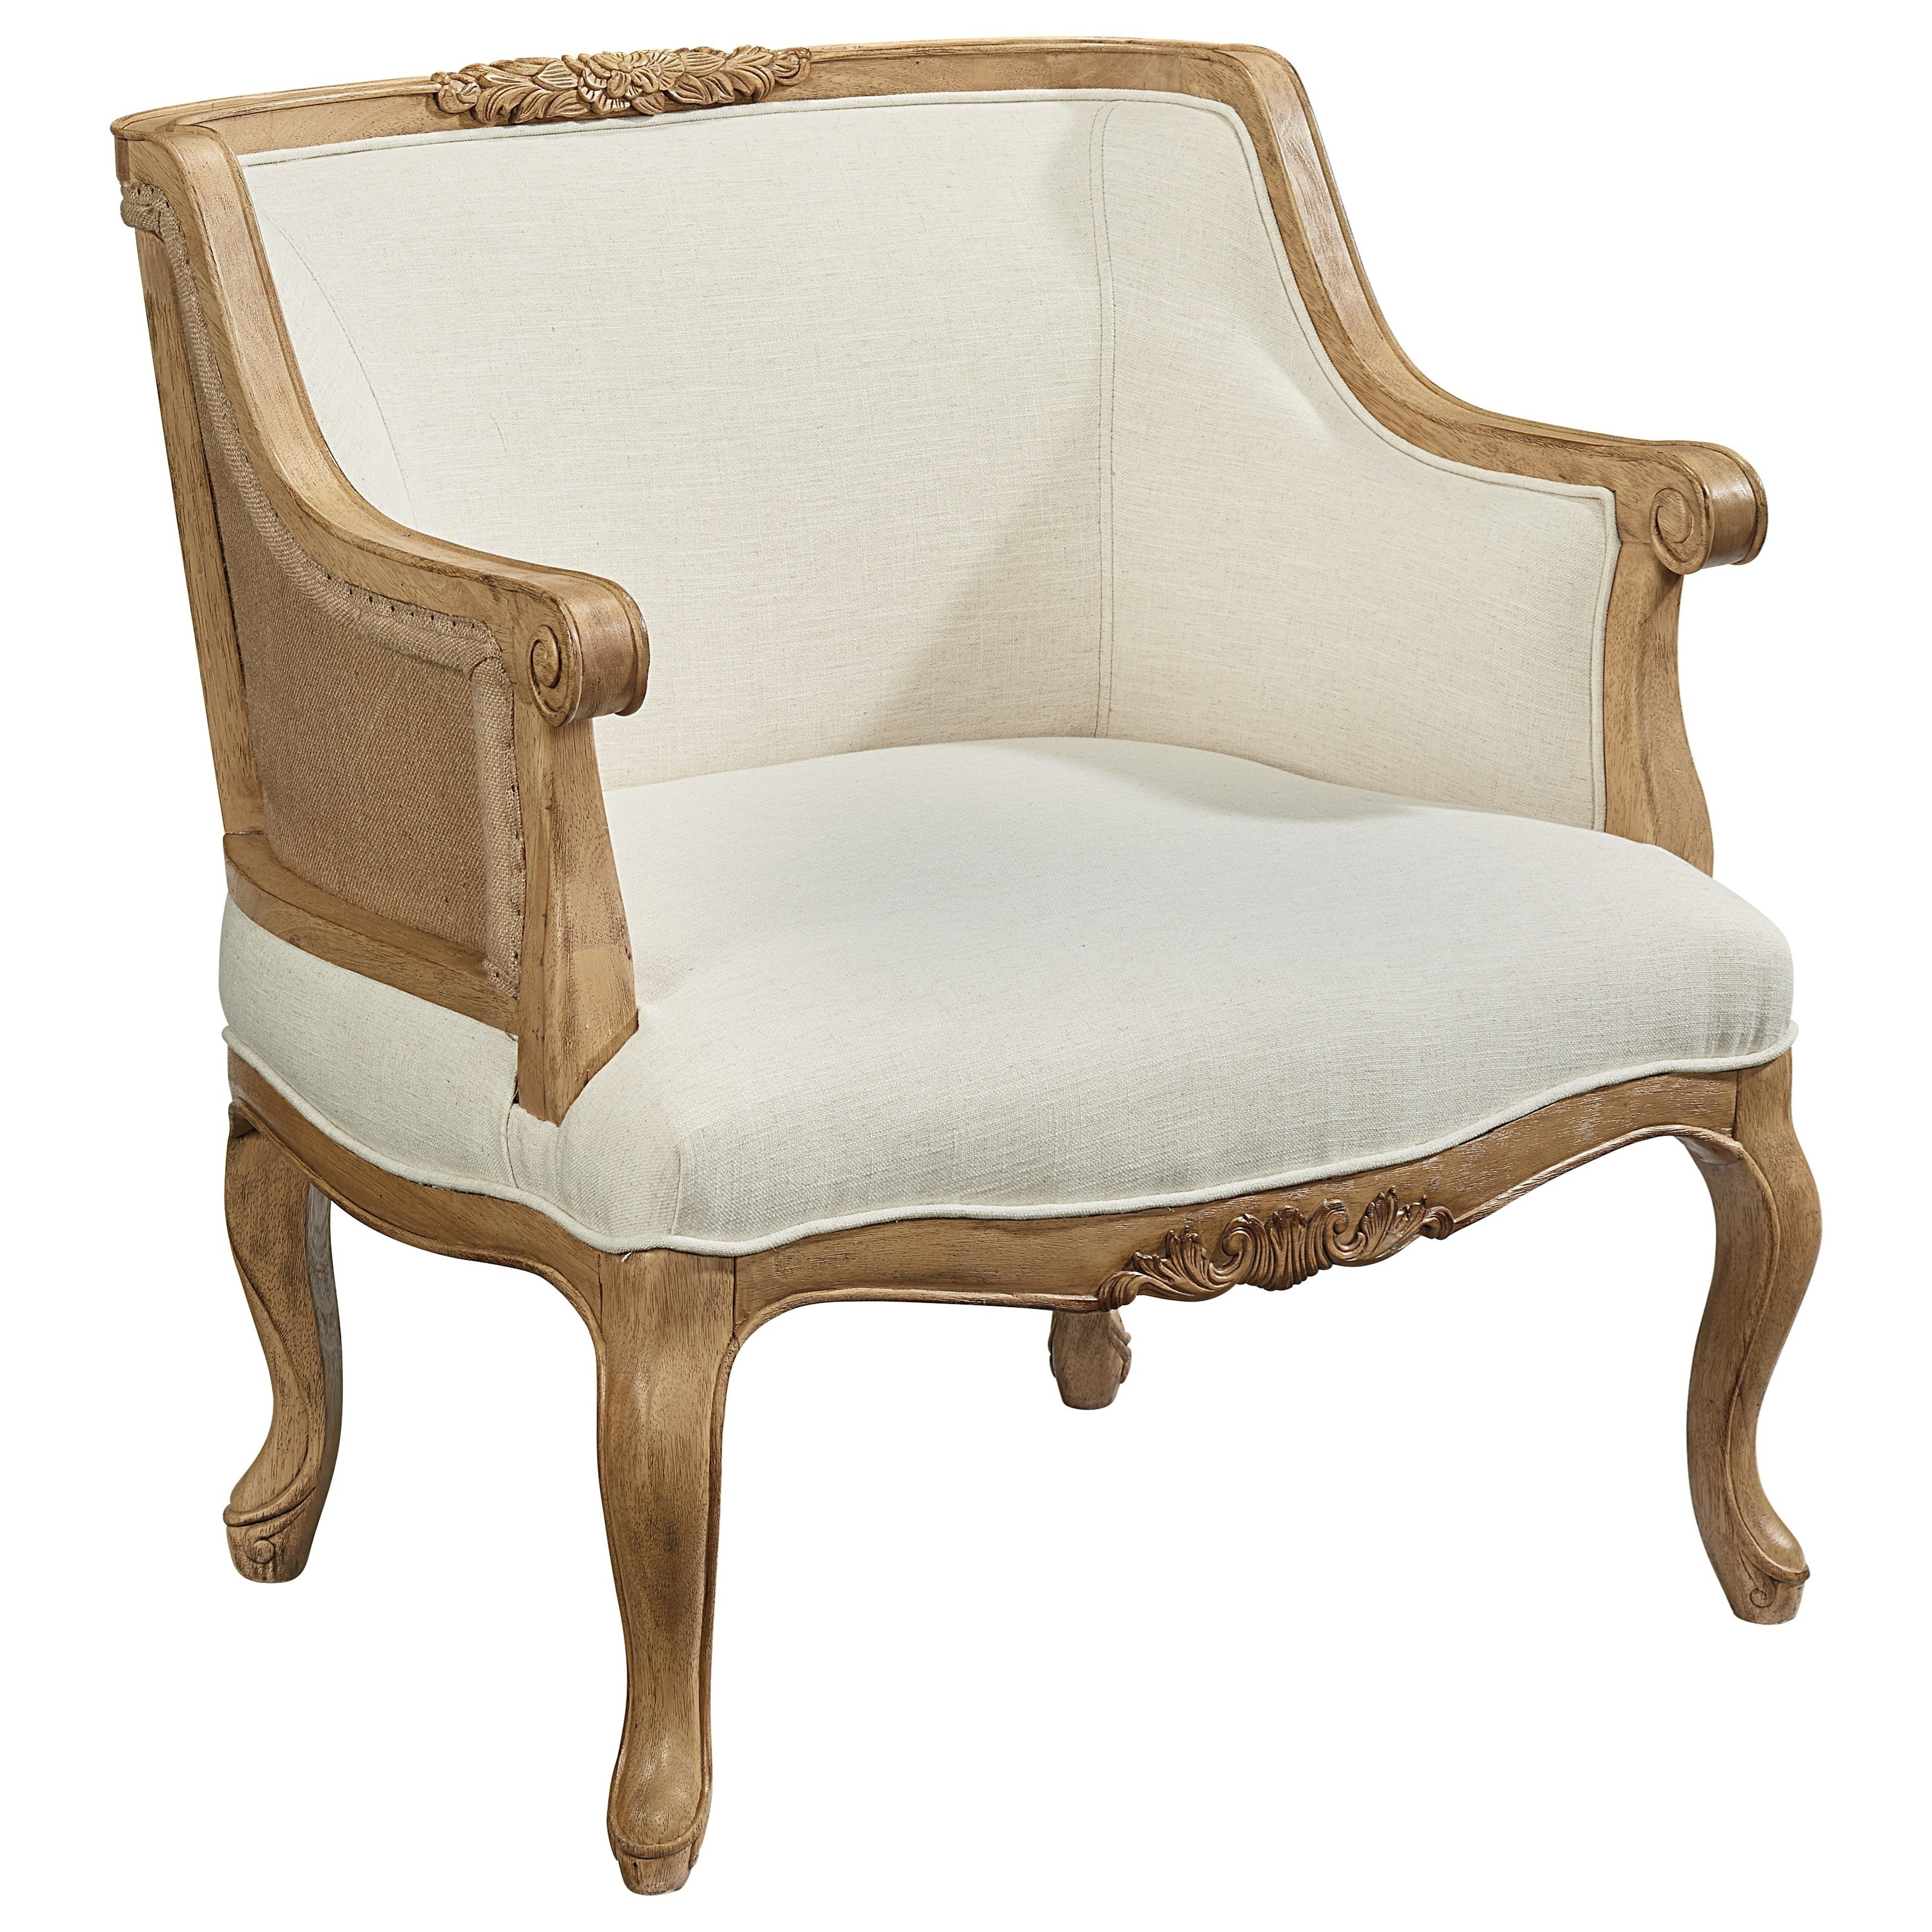 Fashionable Magnolia Homejoanna Gaines Accent Chairs 80635020 Bloom With Magnolia Home Reed Arm Chairs (#10 of 20)